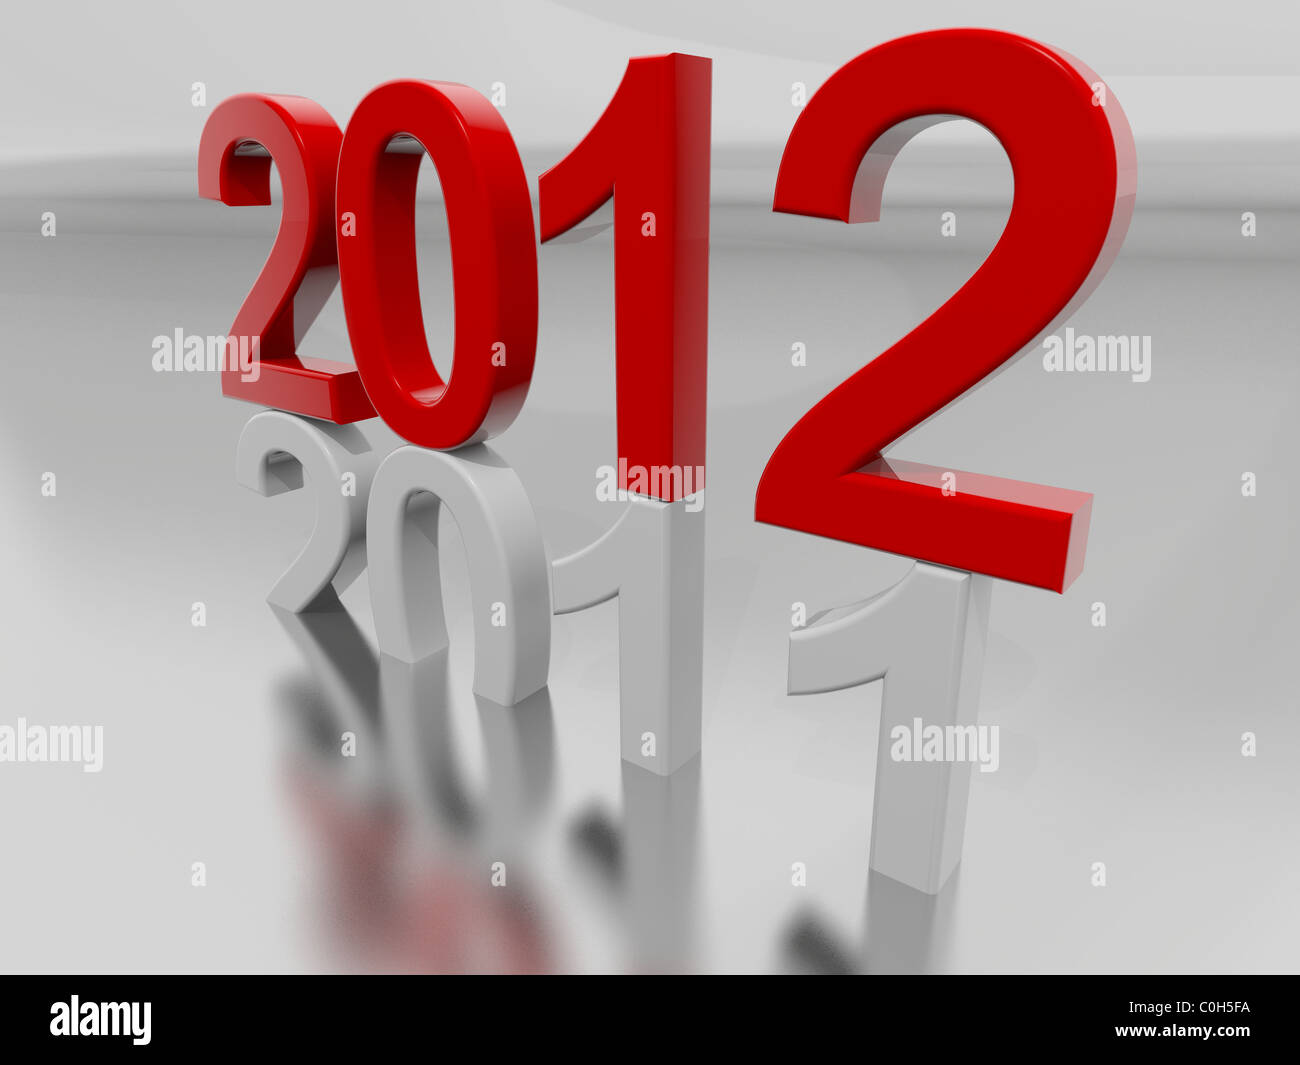 New Year 2012 - Stock Image